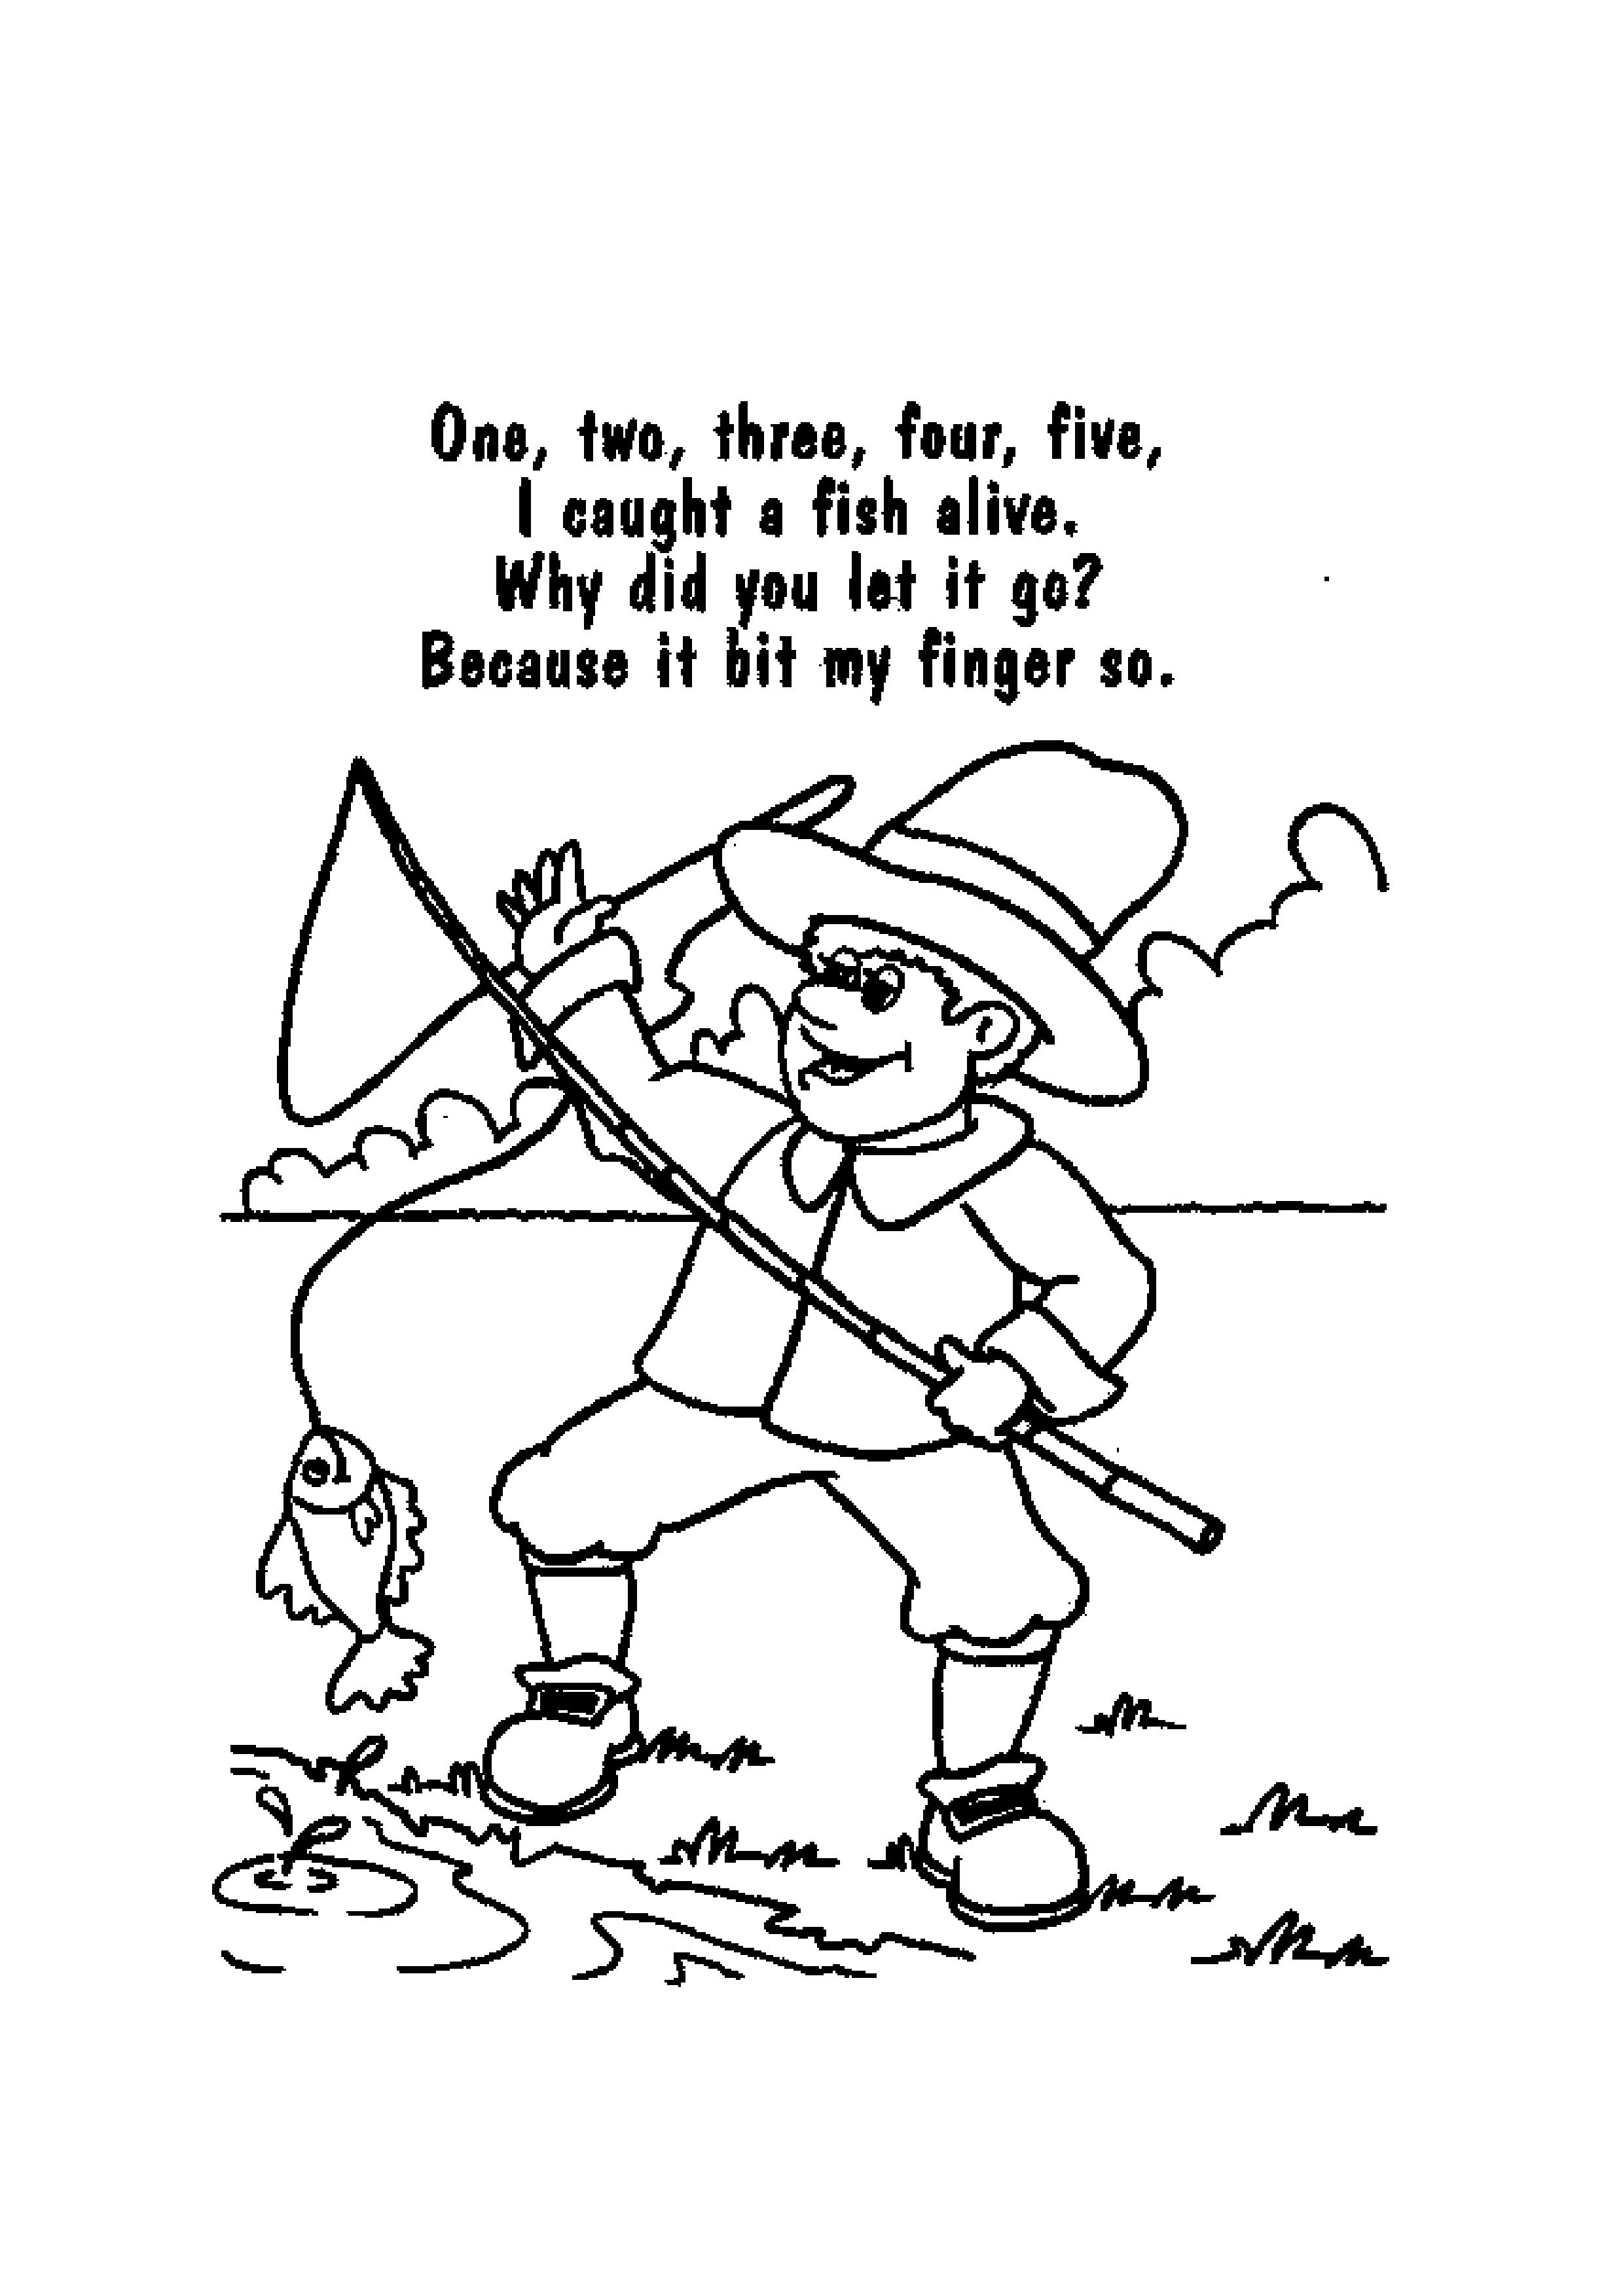 Coloring Sheets Nursery Rhymes Gambarin Us - Nursery Rhymes Coloring - Free Printable Nursery Rhyme Coloring Pages